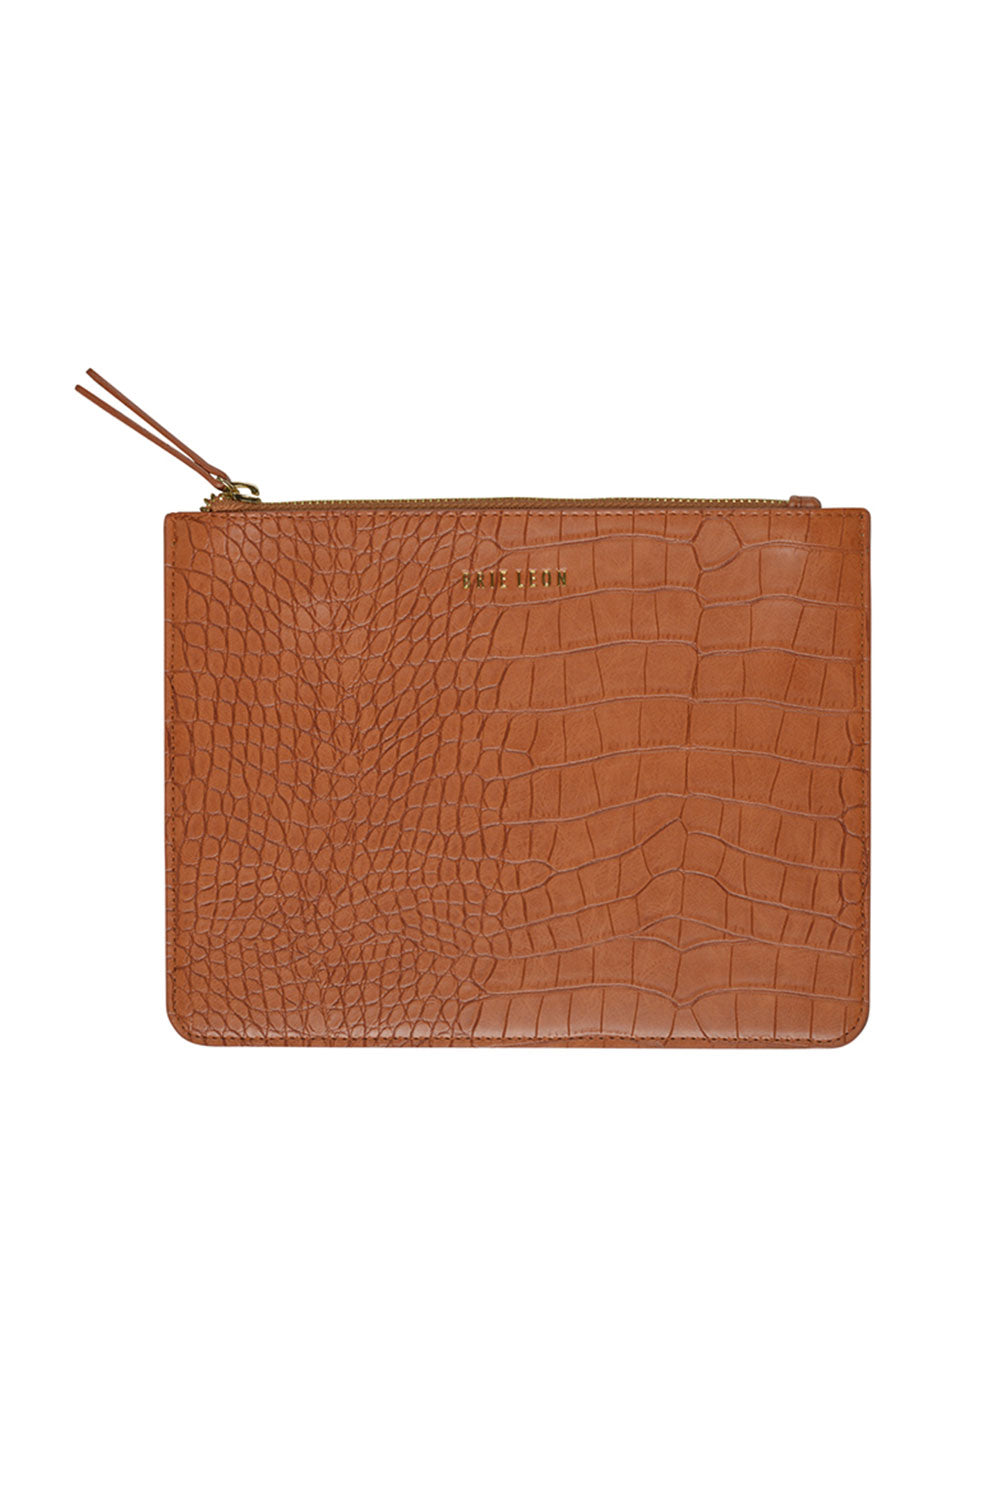 ZIP POUCH | TAN CROC | BRIE LEON NZ | Bags NZ | Black Box Boutique Auckland | Womens Fashion NZ